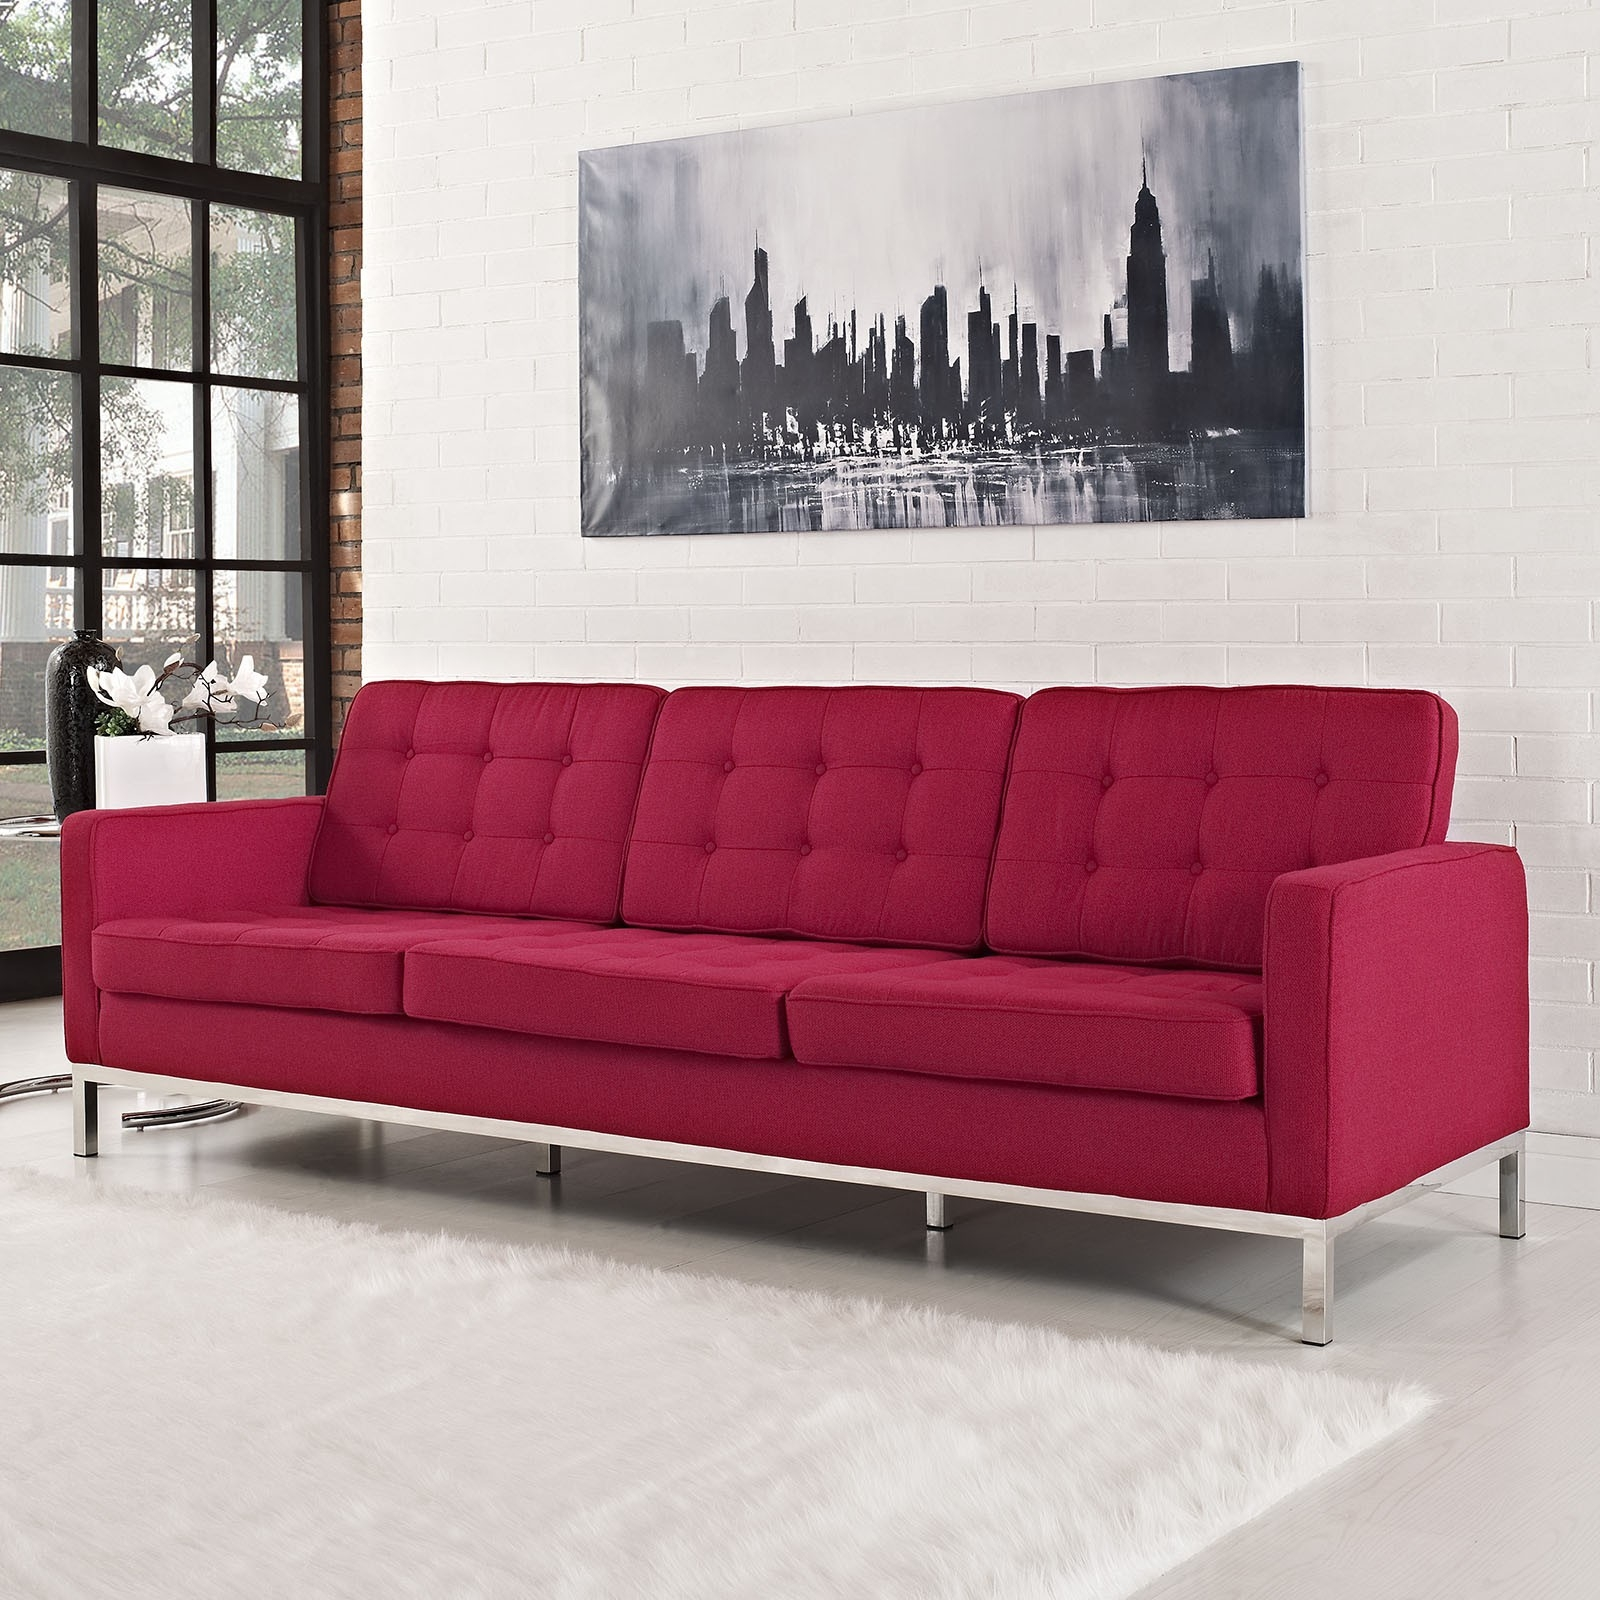 Knoll Florence 2 Seats Sofa In The Shop River Academy With Regard To Florence Large Sofas (Image 11 of 15)